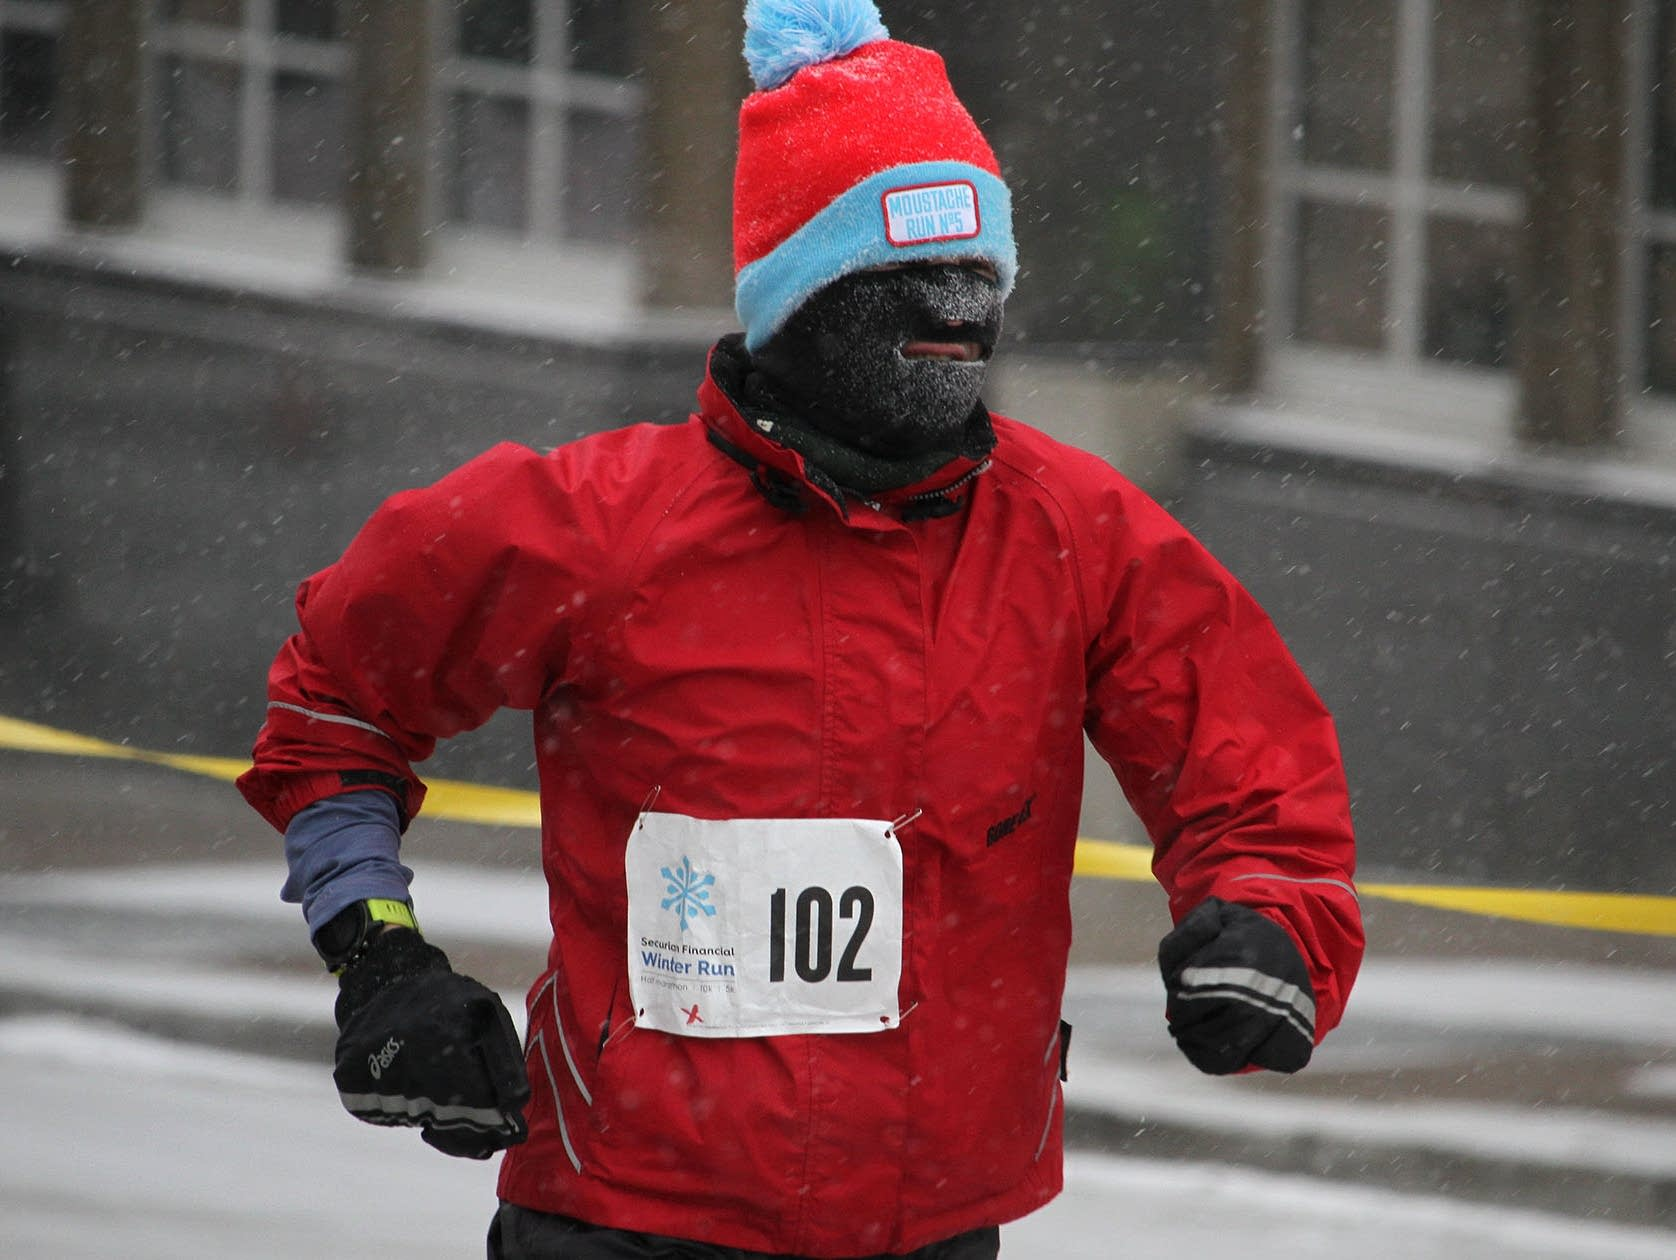 Runners at the Securian Winter Run in St. Paul